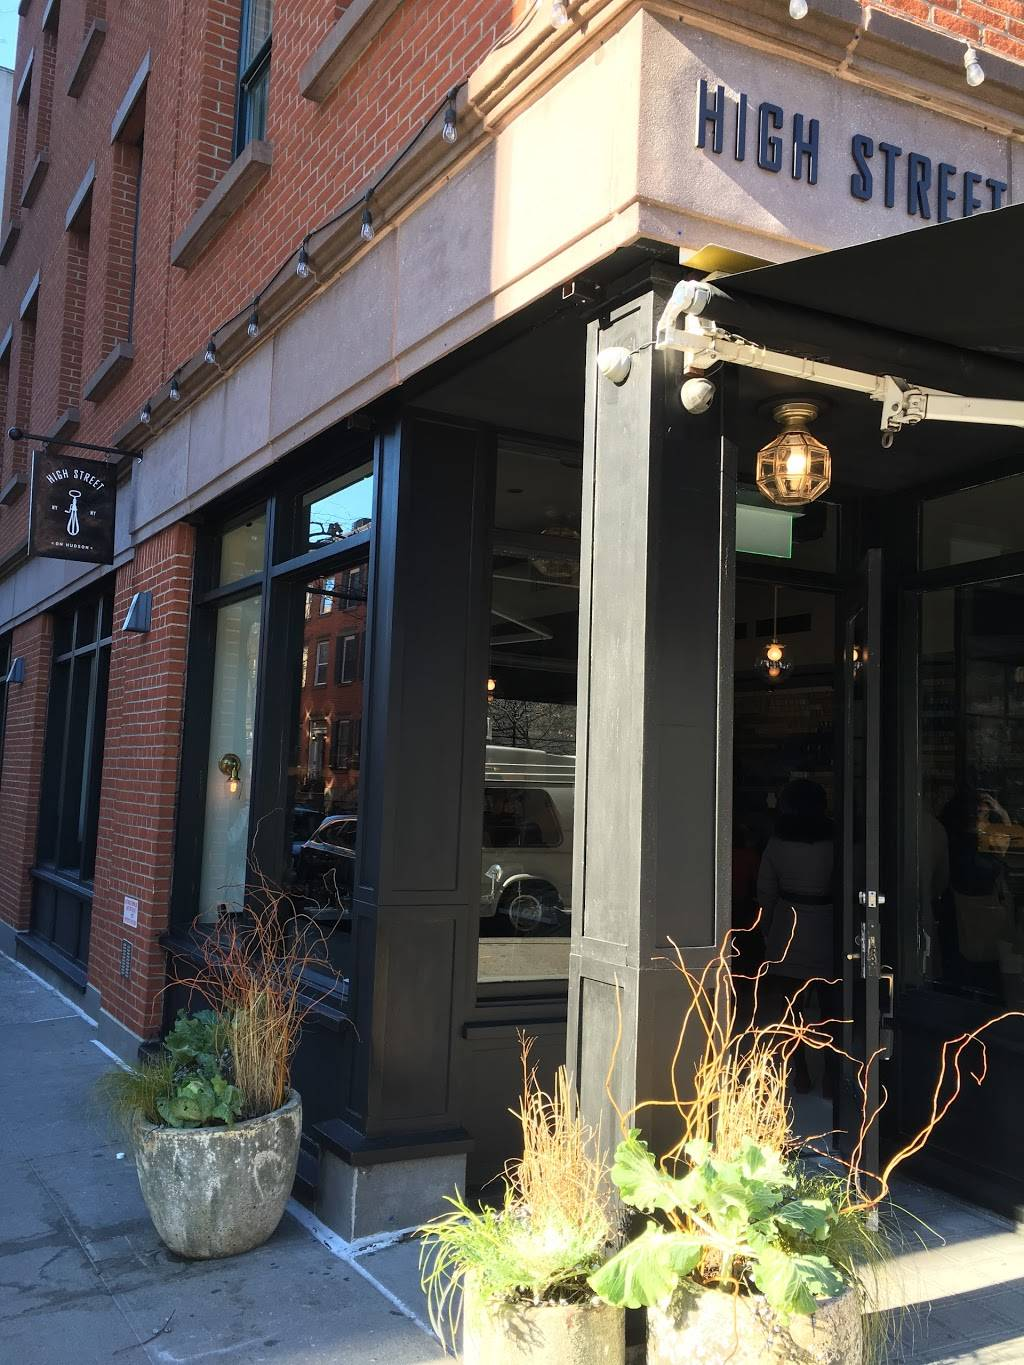 High Street on Hudson | cafe | 637 Hudson St, New York, NY 10014, USA | 9173883944 OR +1 917-388-3944